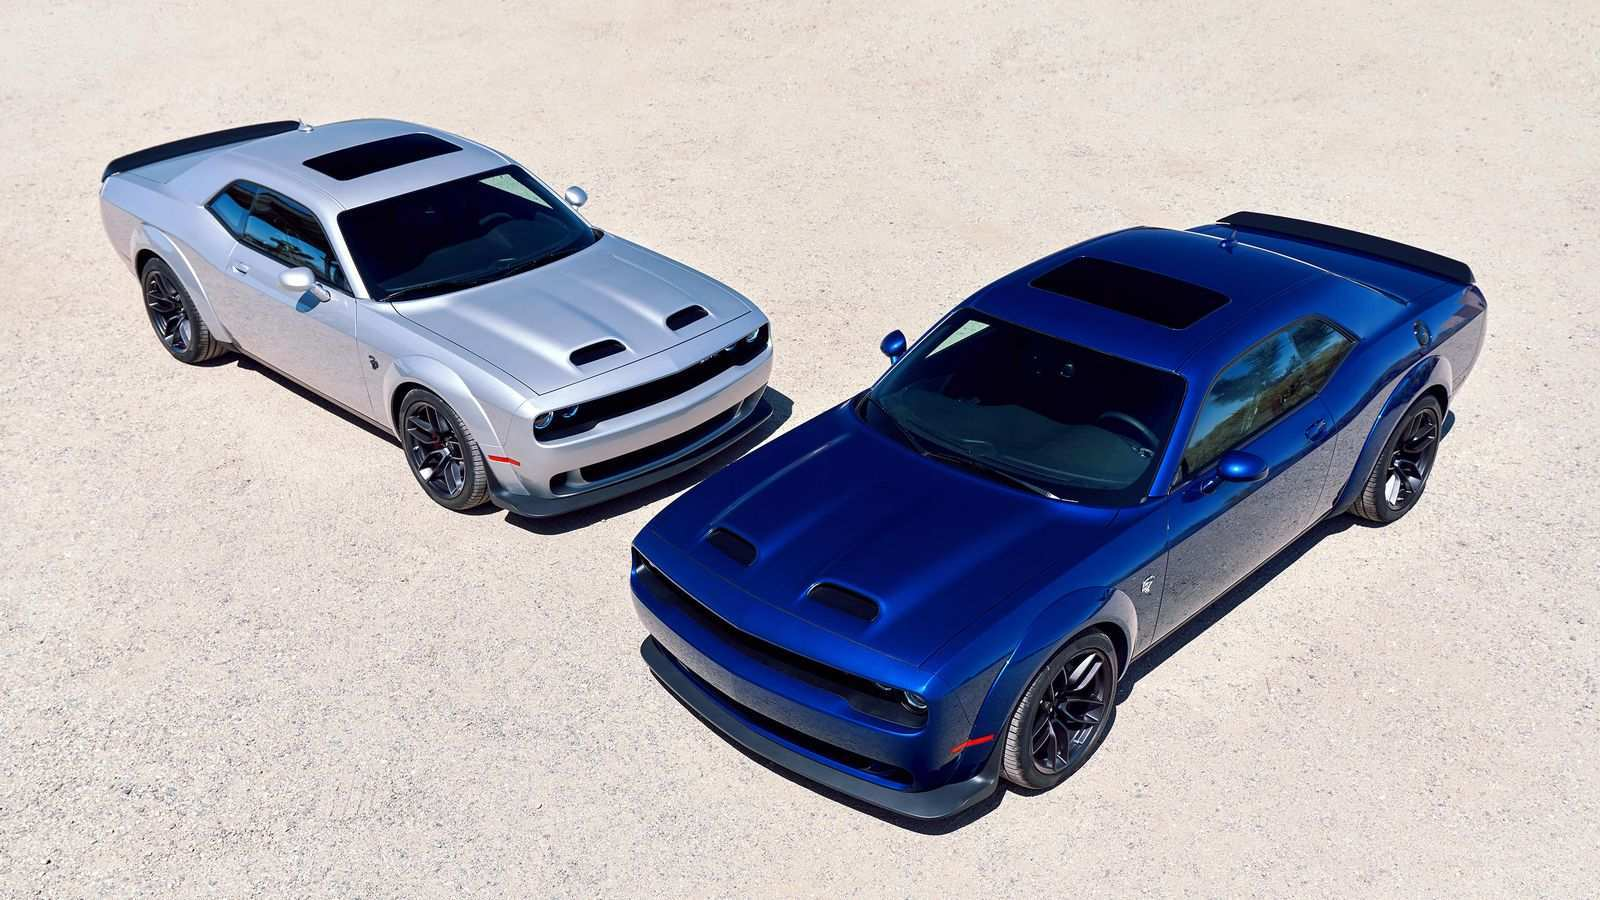 34 Gallery of 2020 Dodge Challenger Awd Specs by 2020 Dodge Challenger Awd